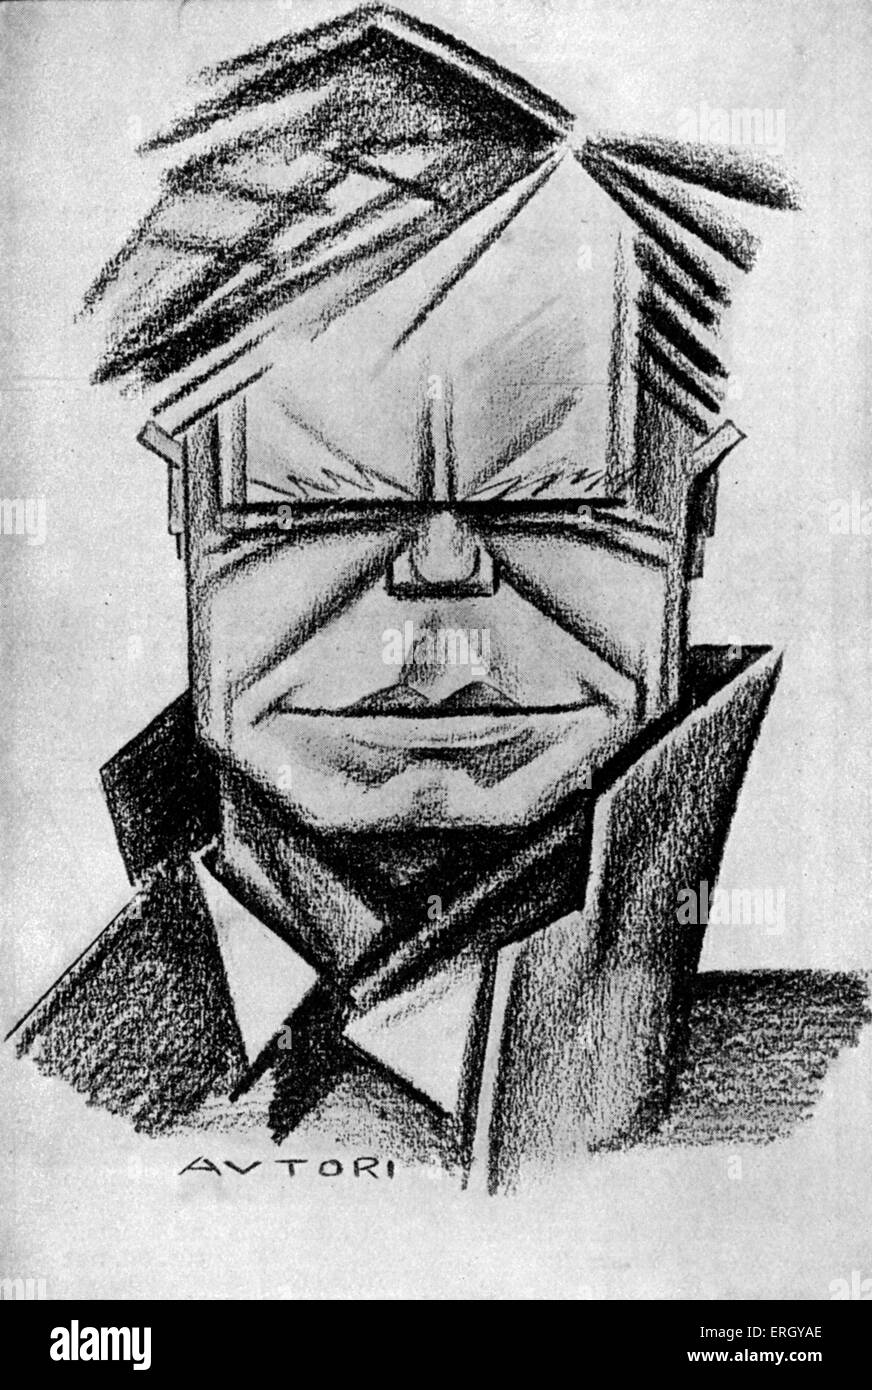 'Beaverbrook: The statesman and the man' by Edgar Middleton.  1930s Caricature by Avtori.. William Maxwell - Stock Image